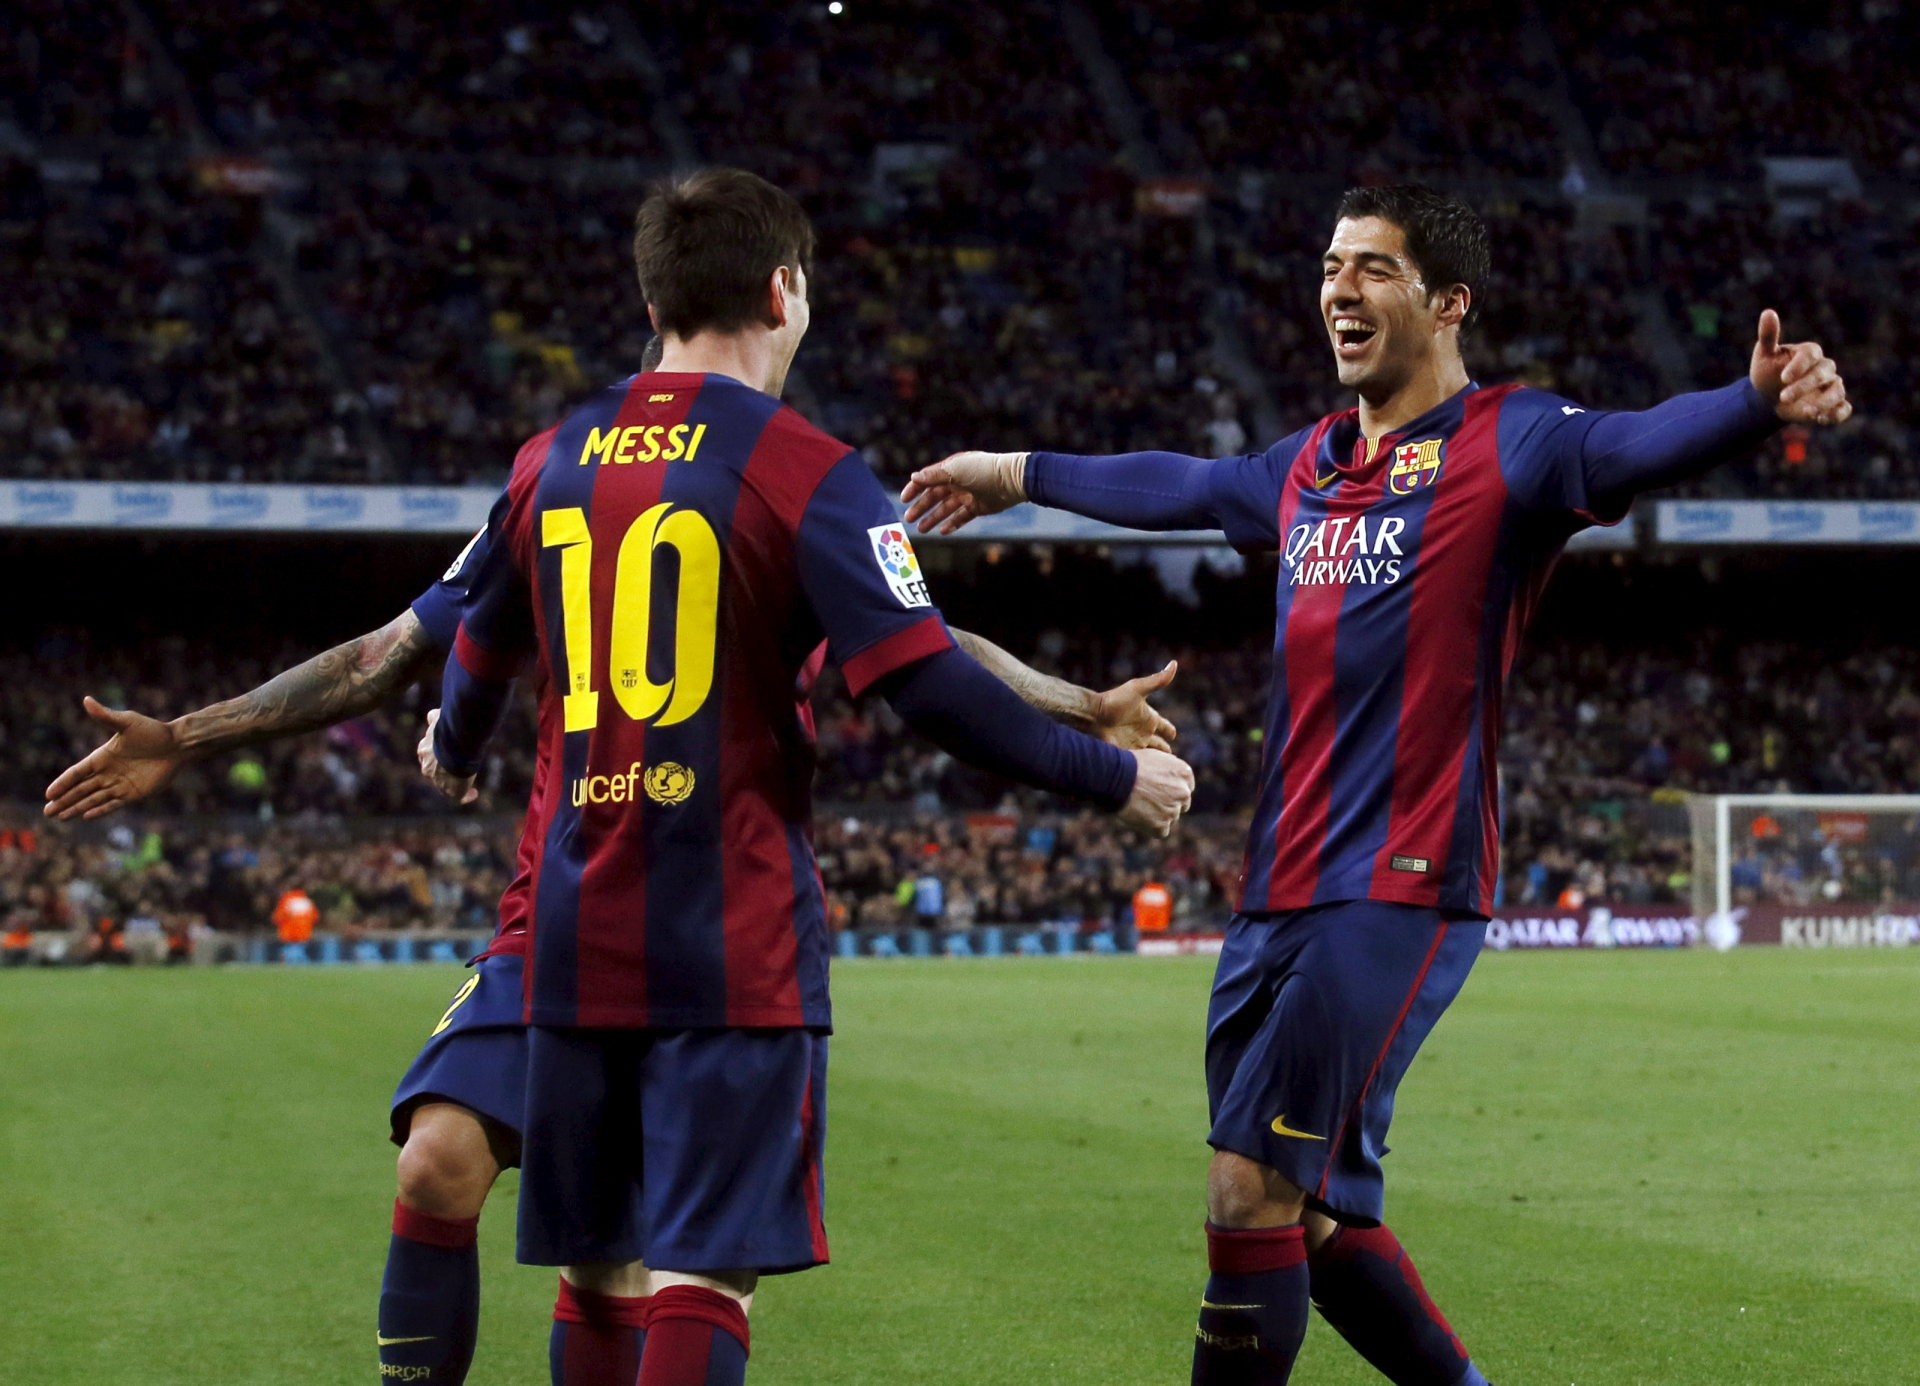 Barcelona's Lionel Messi (L) and Luis Suarez celebrate a goal against Almeria during their Spanish first division soccer match at Camp Nou stadium in Barcelona April 8, 2015. REUTERS/Albert Gea